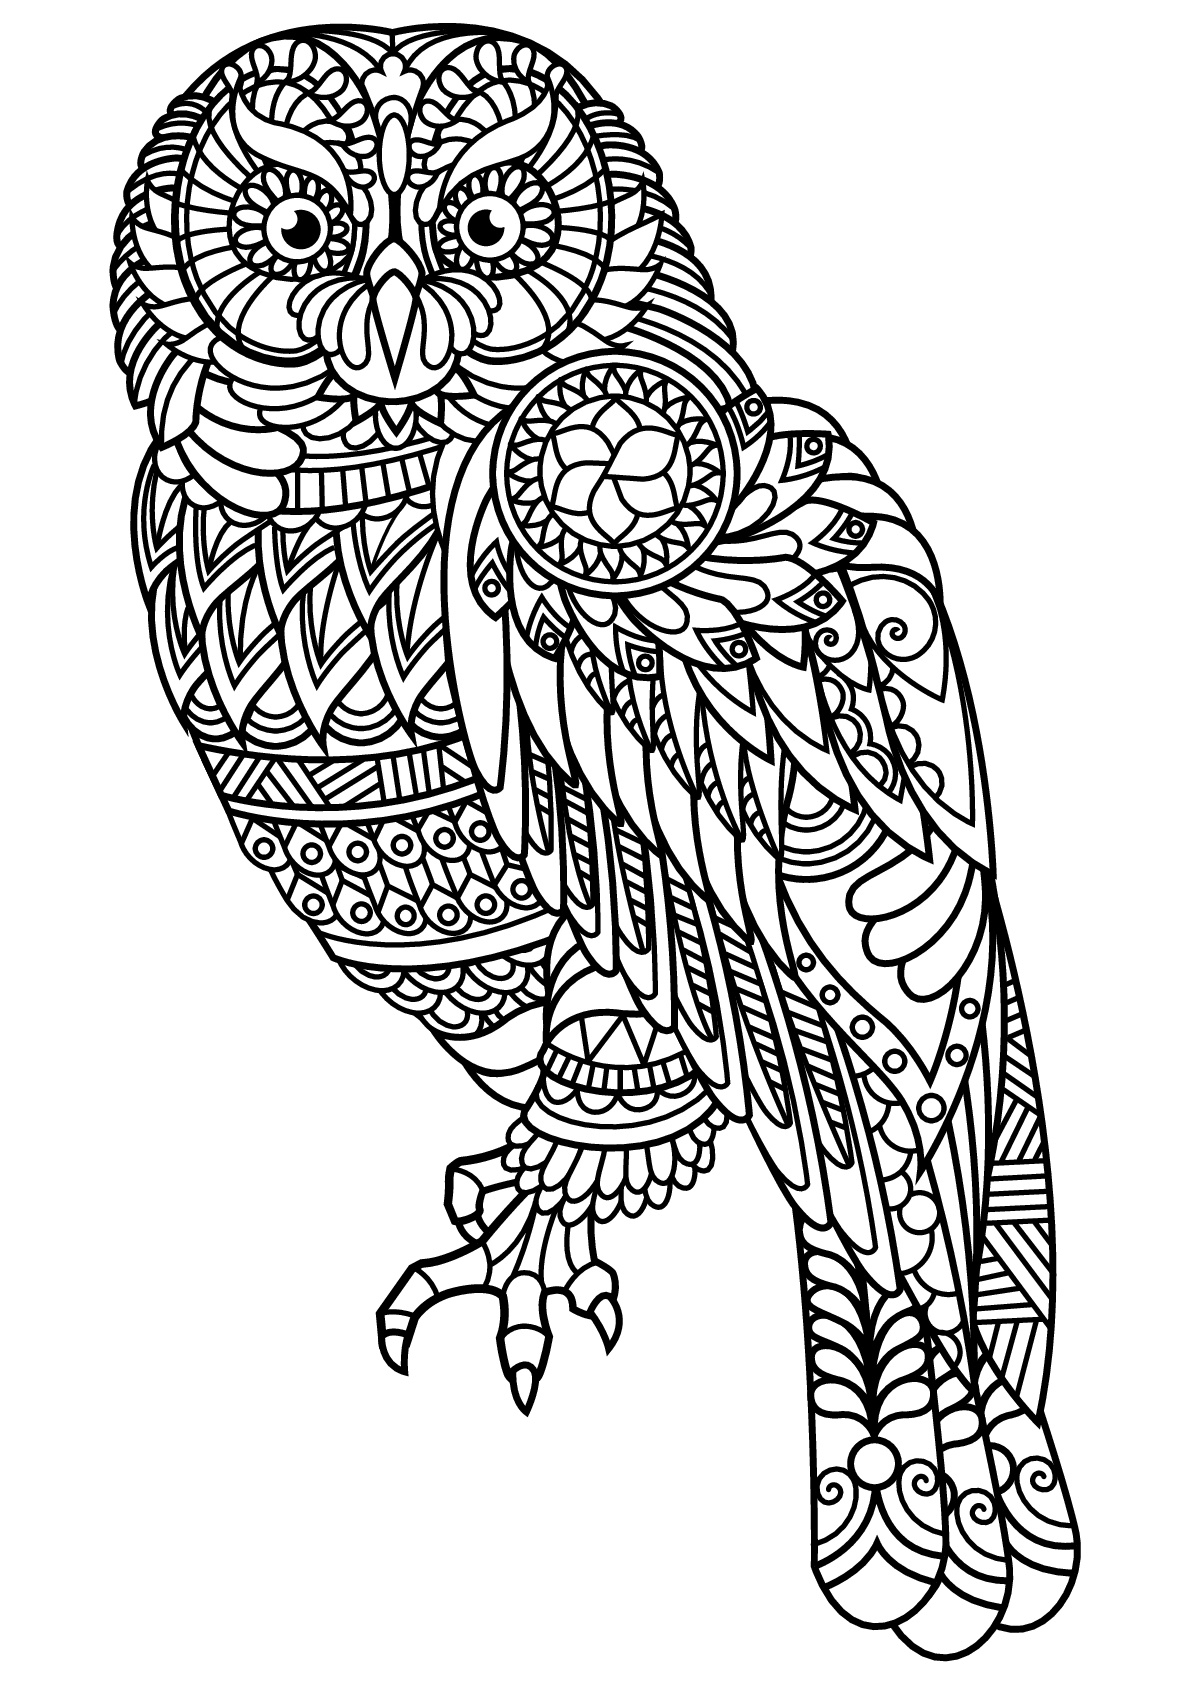 owl printable coloring pages print download owl coloring pages for your kids coloring owl printable pages